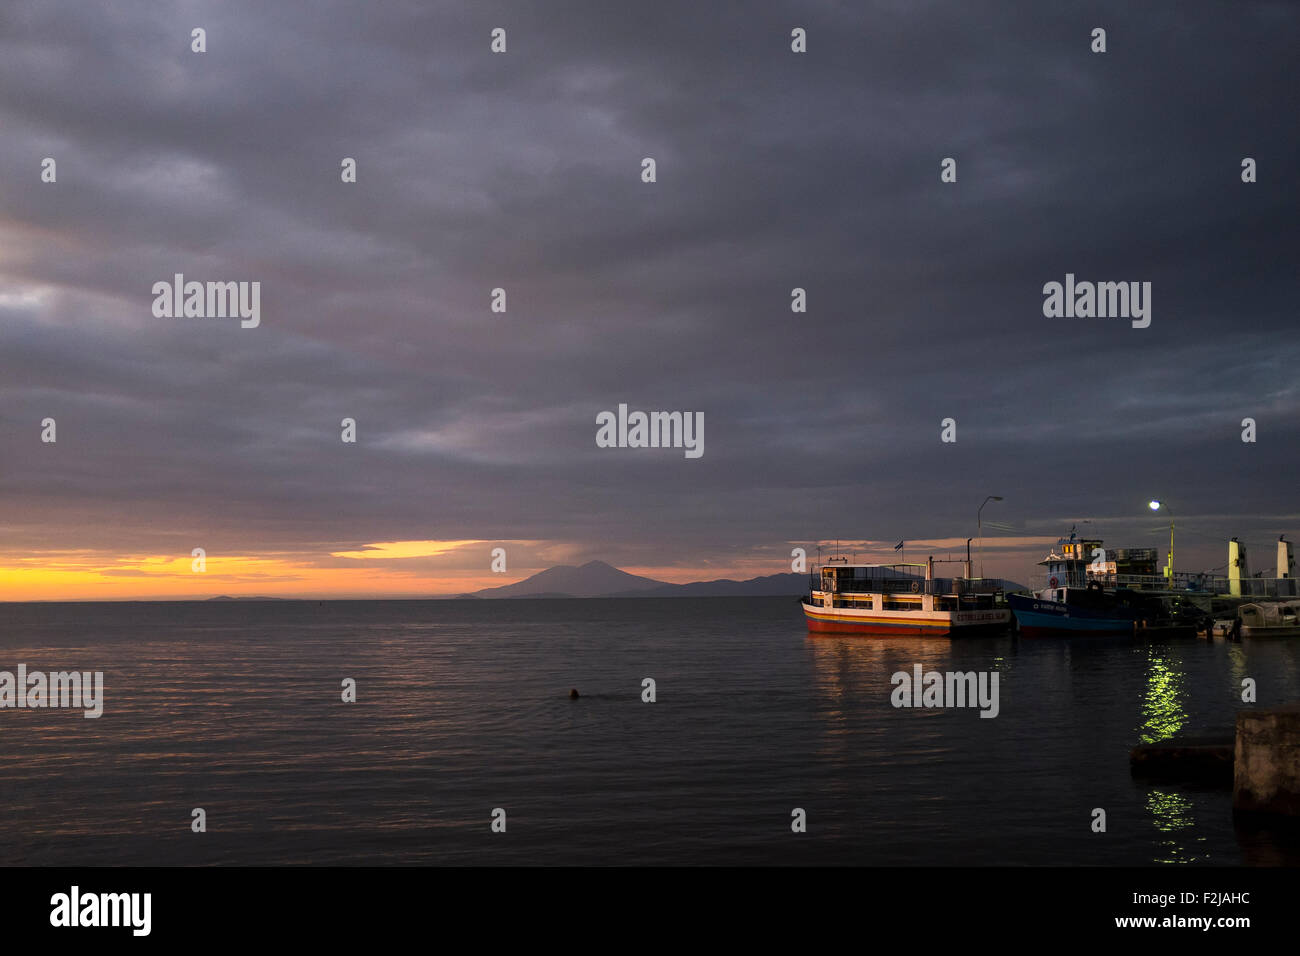 A beautiful and colorful sunset across the ferry dock of Moyogalpa, Ometepe Nicaragua with a dramatic sky - Stock Image